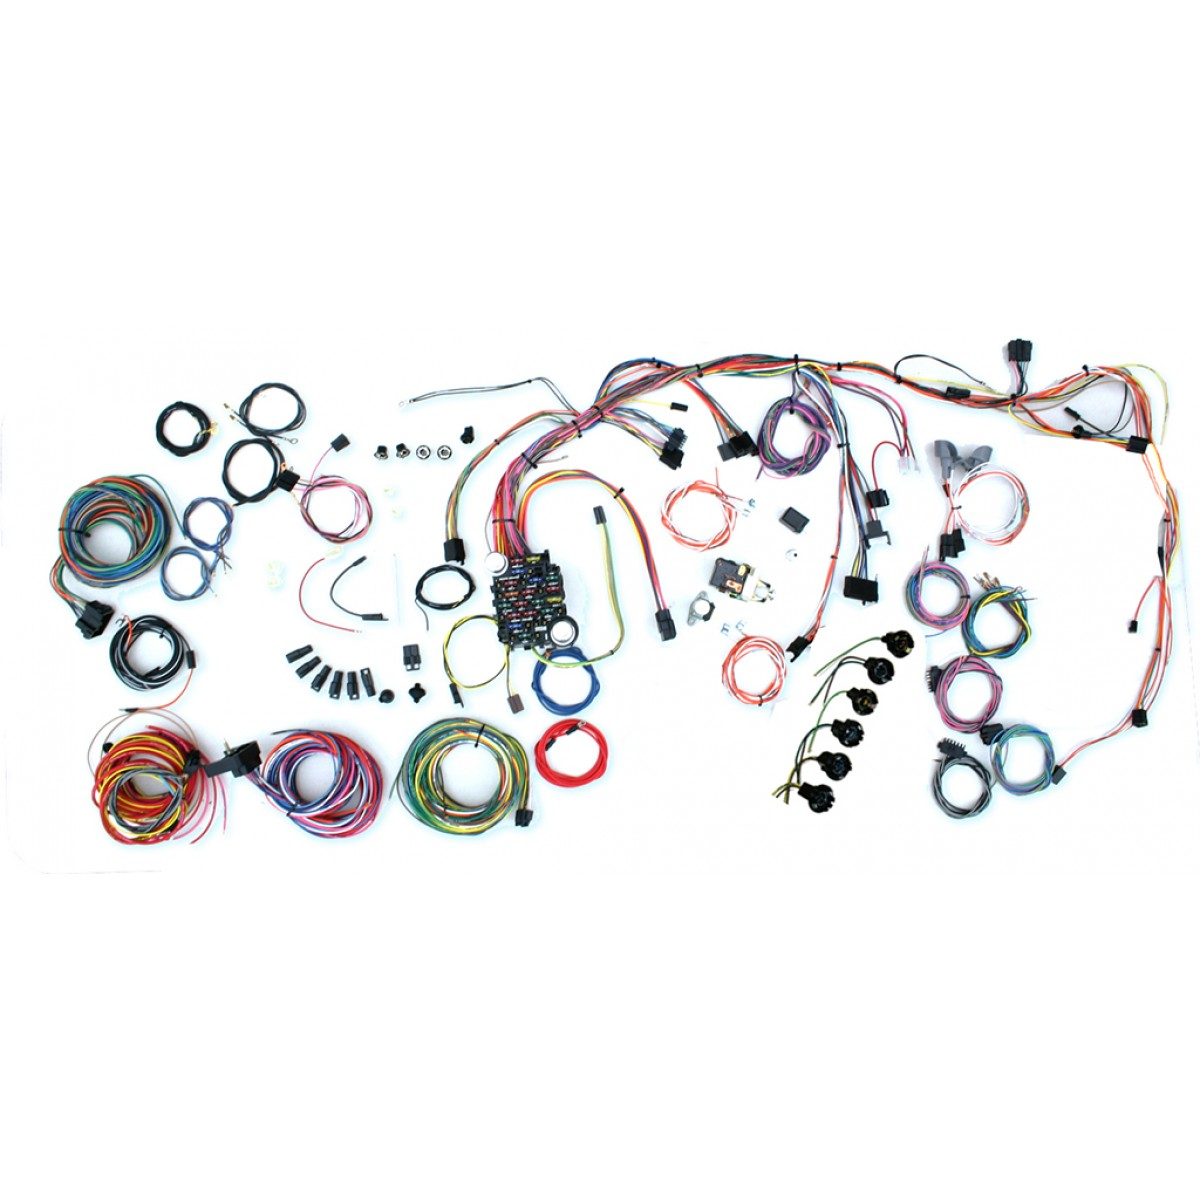 Wiring Harness For 1972 Nova Reinvent Your Diagram Diagrams 74 1969 Complete Kit Rh Code510 Com